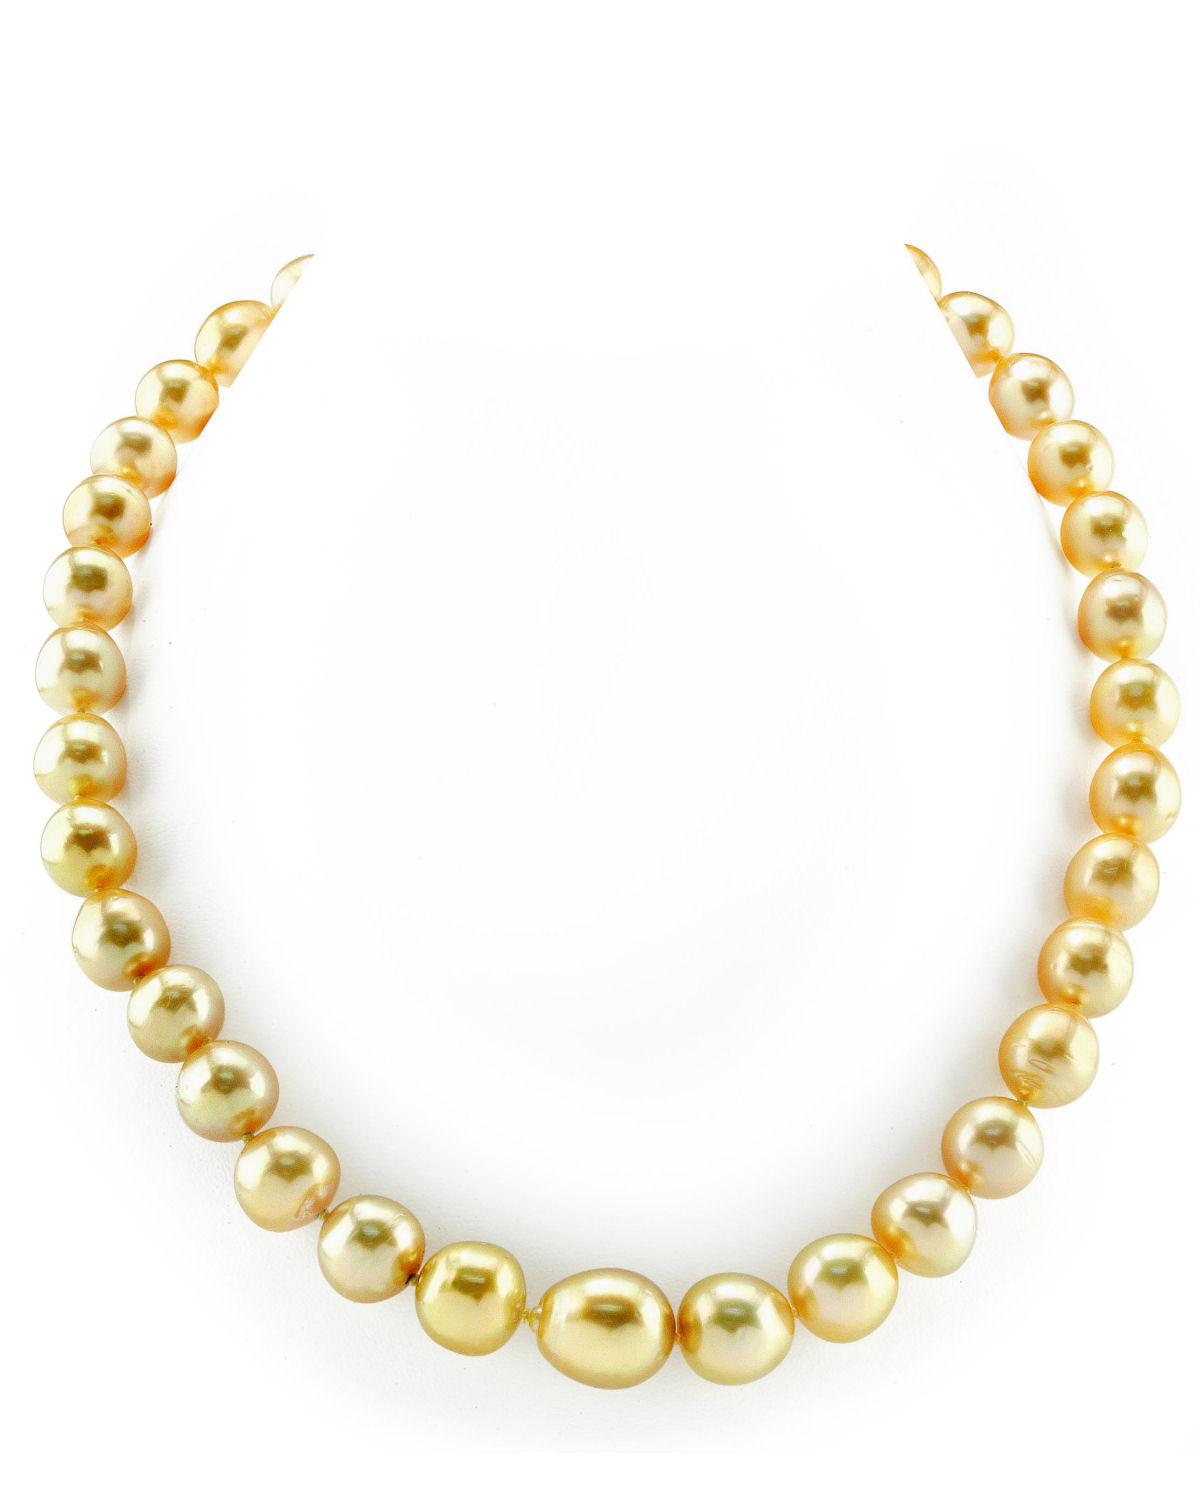 10-13mm Oval-Shaped Golden South Sea Pearl Necklace